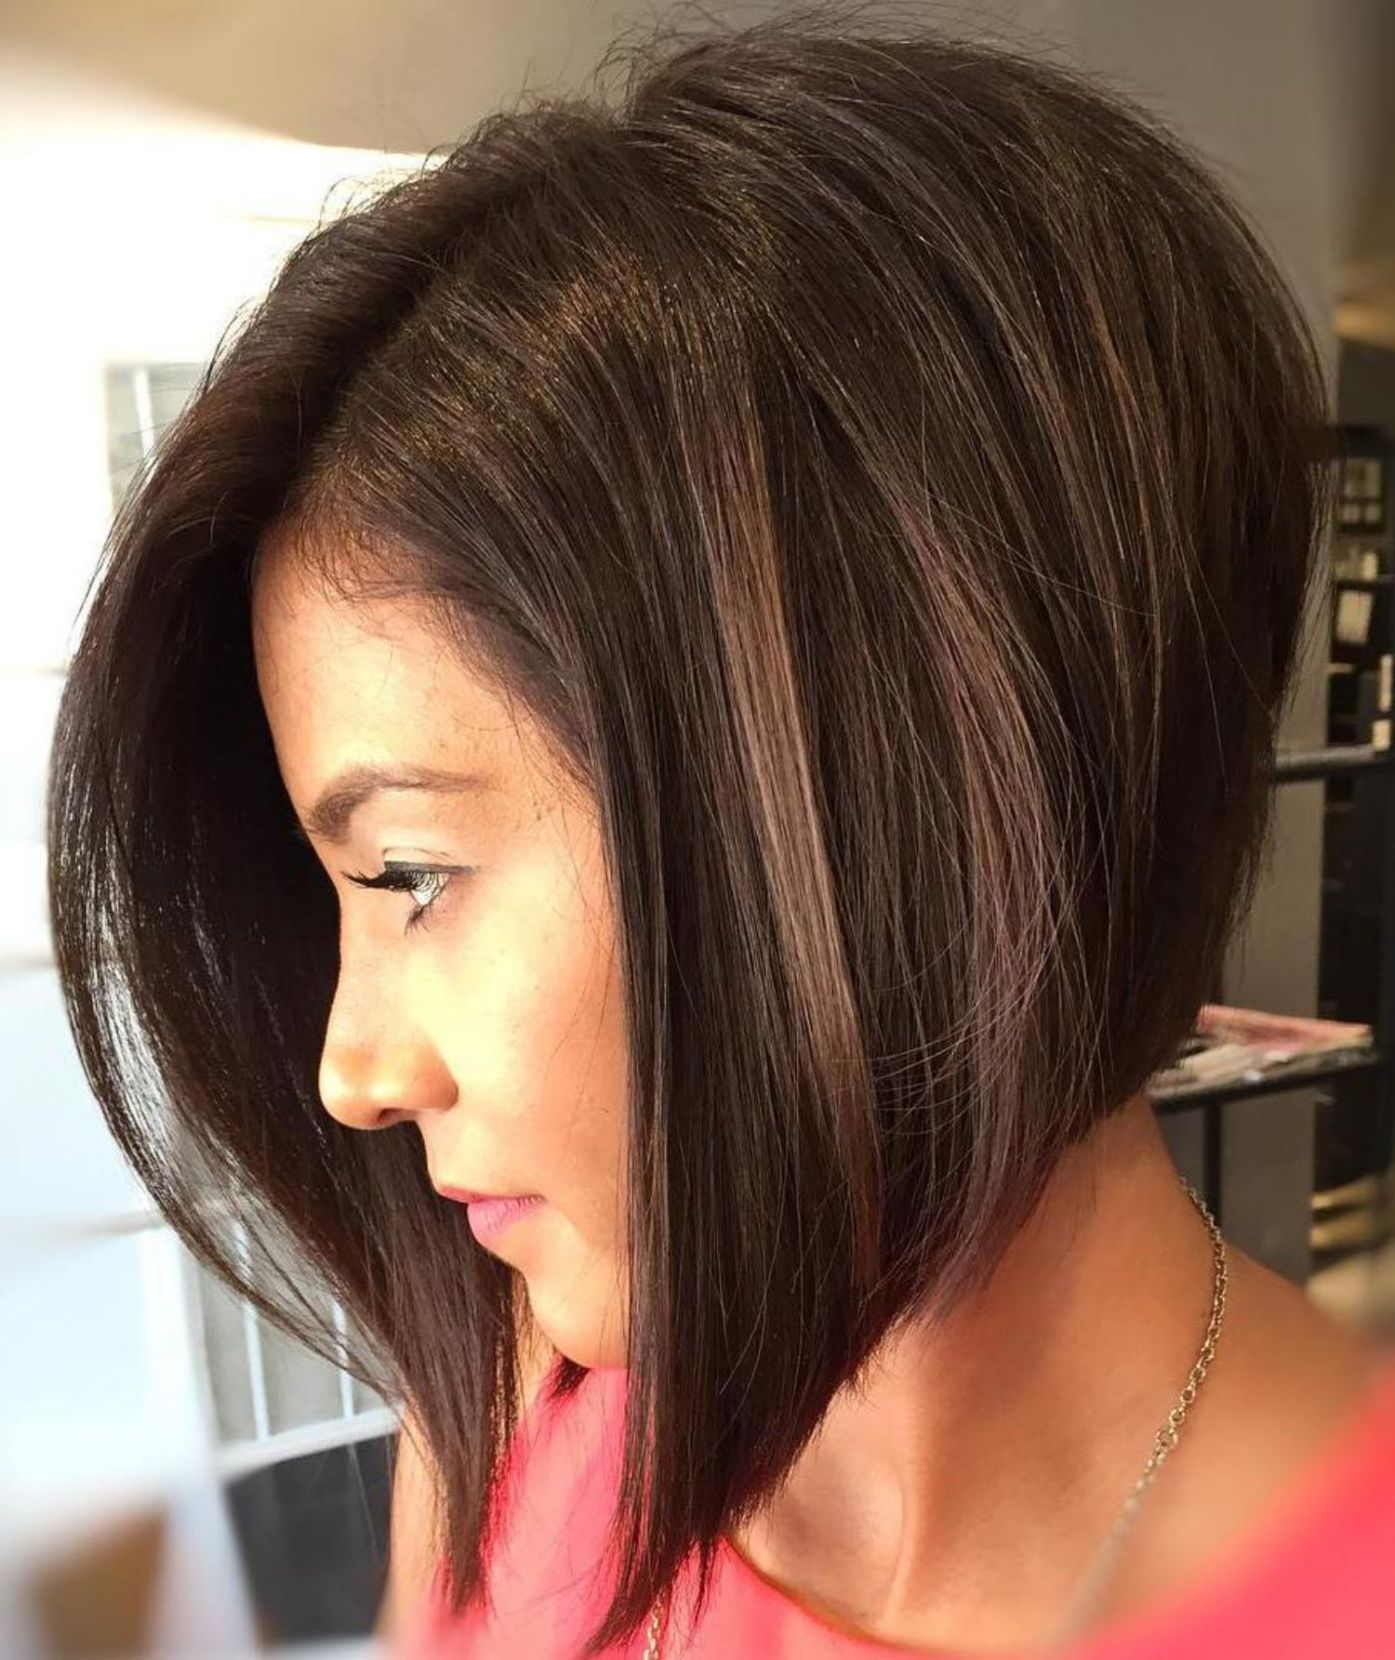 60 Classy Short Haircuts And Hairstyles For Thick Hair Hair Styles Short Hairstyles For Thick Hair Haircut For Thick Hair